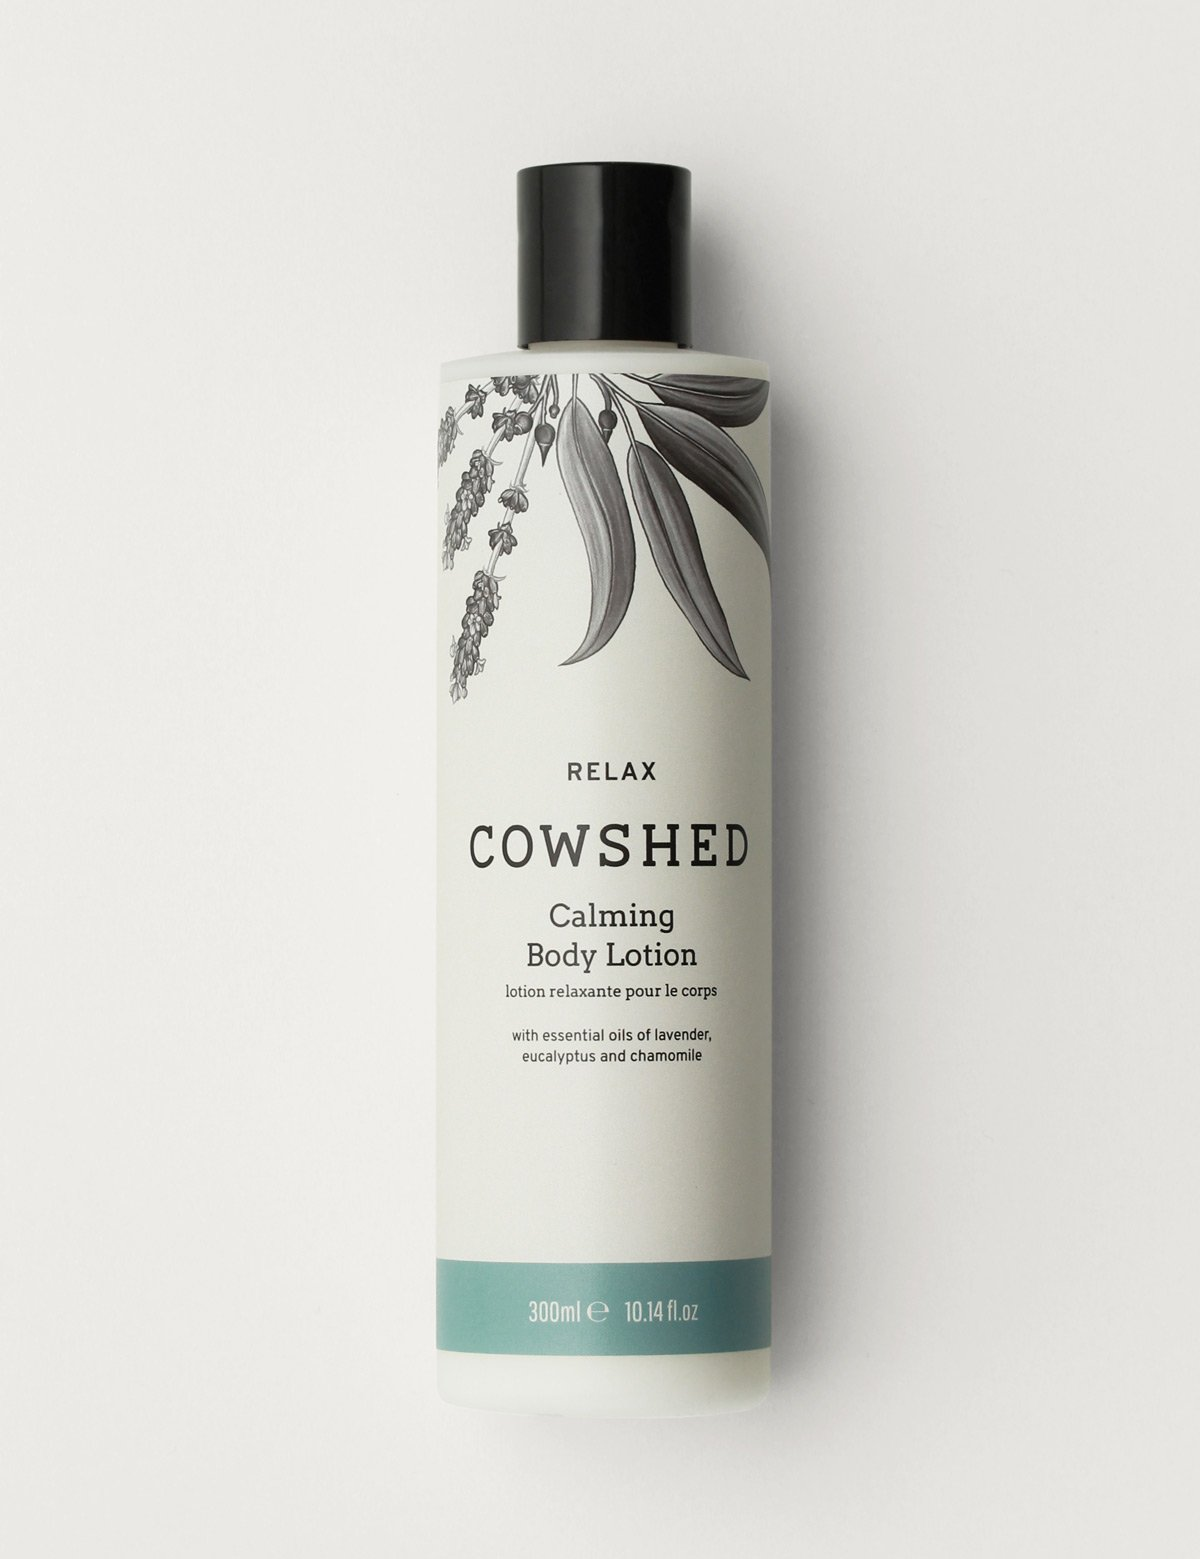 Cowshed Branding Packaging by Spinach Branding